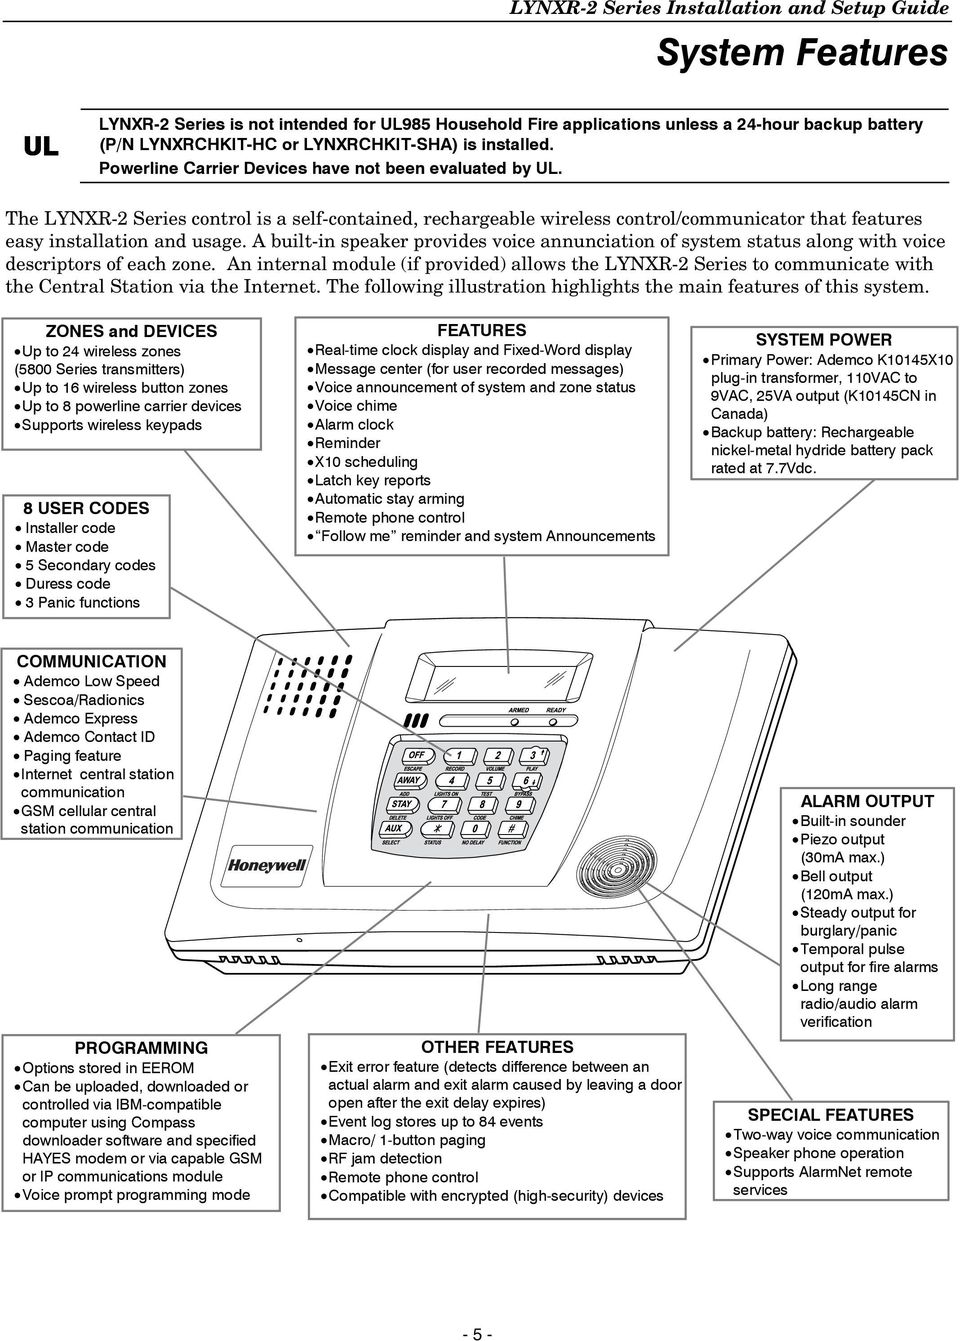 LYNXR-2 Series Security Systems - PDF